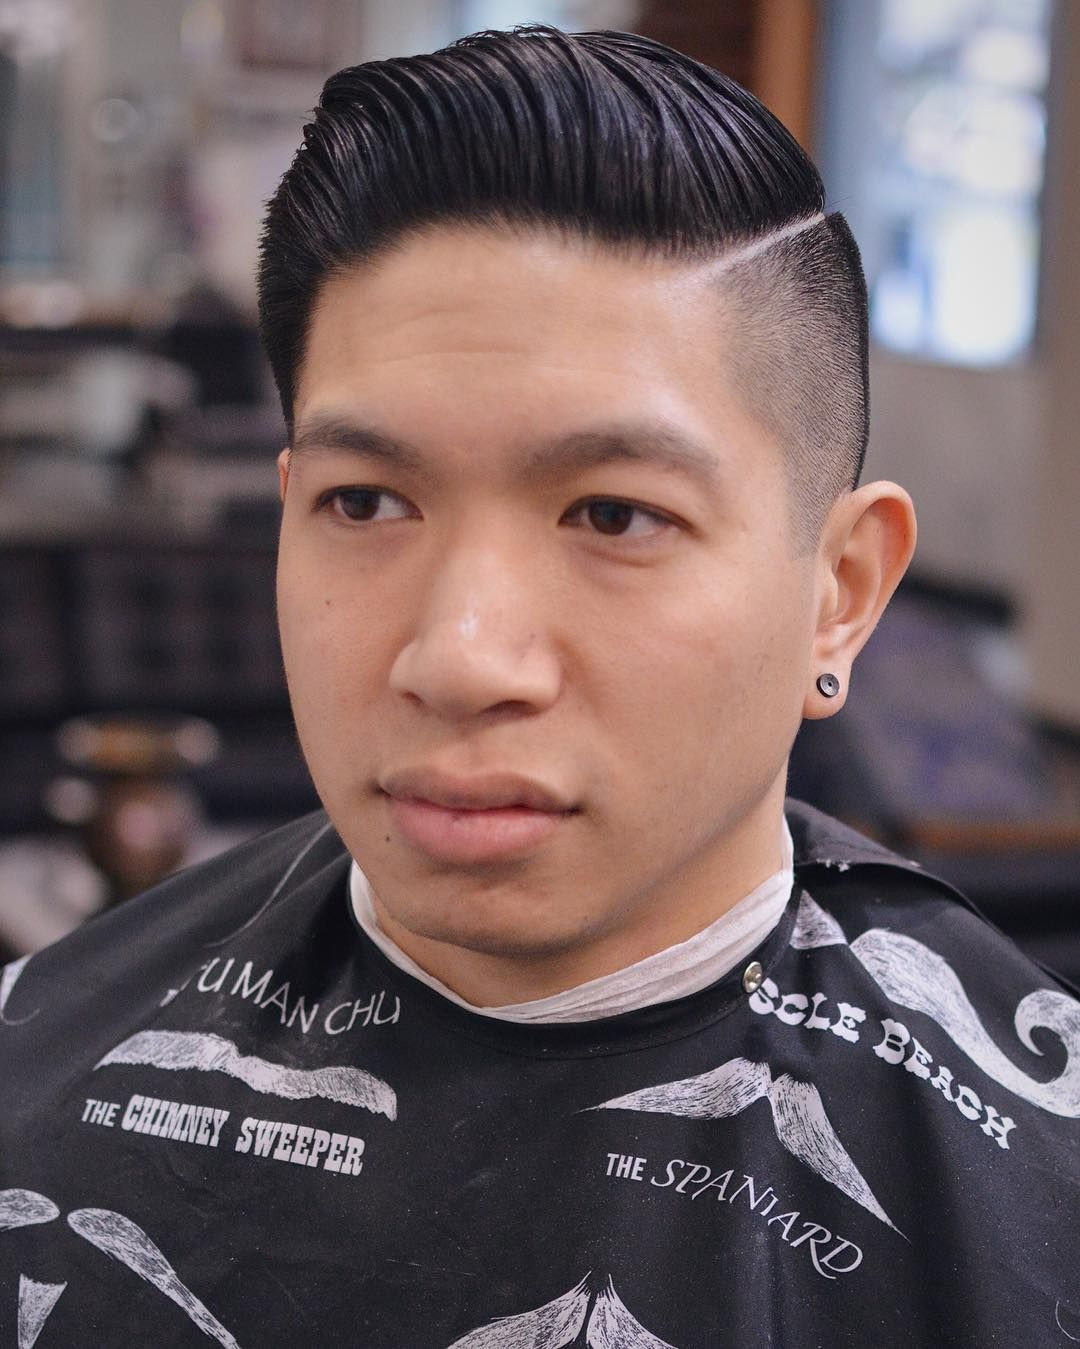 Mens faded haircut haircut by blackfishbry ifttsxqxy menshair